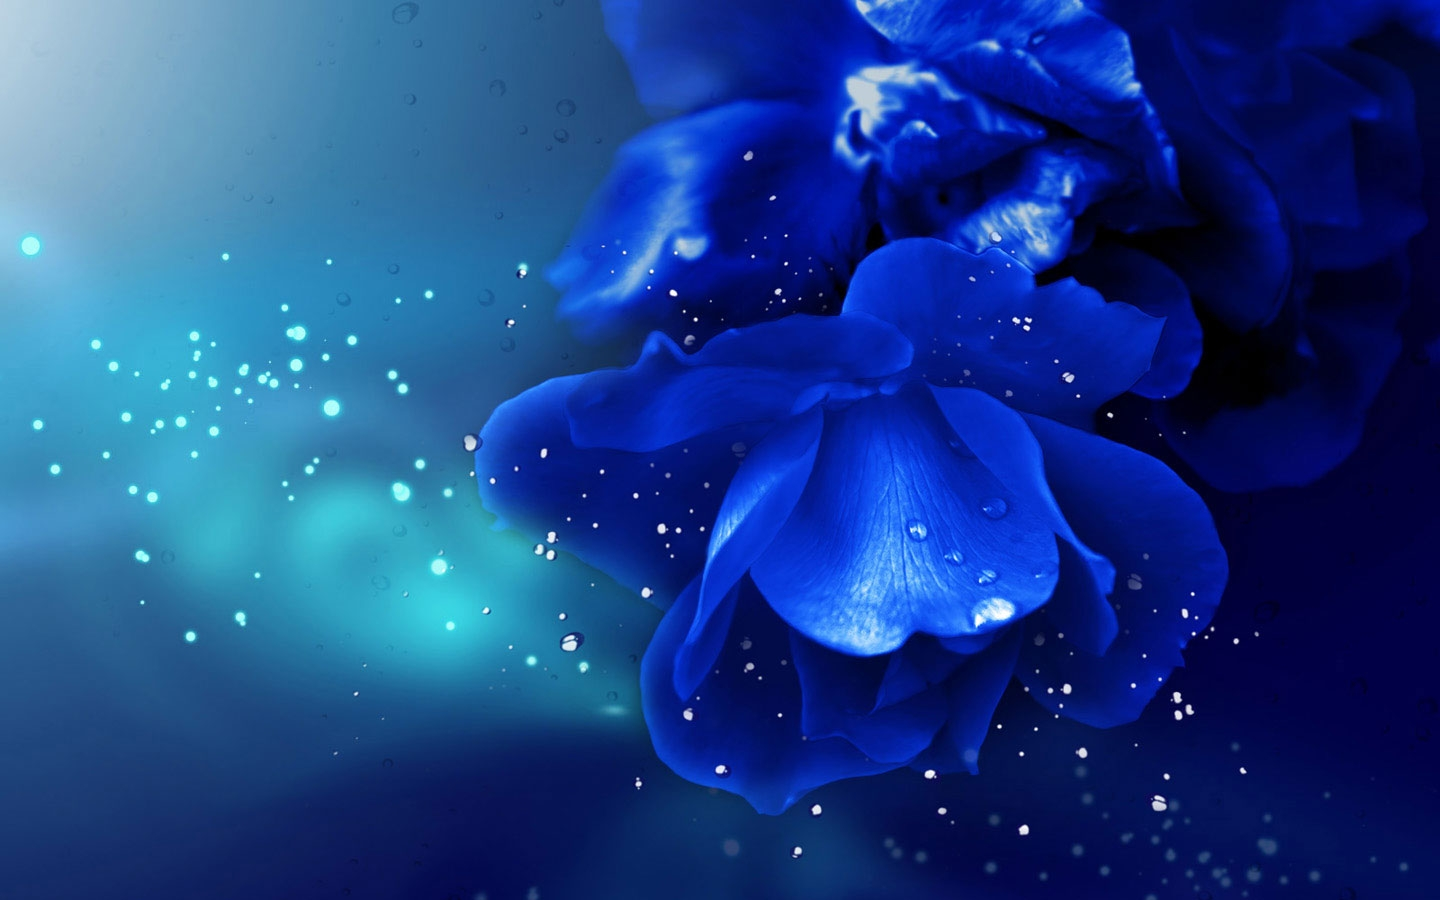 Amazing Blue Wallpapers